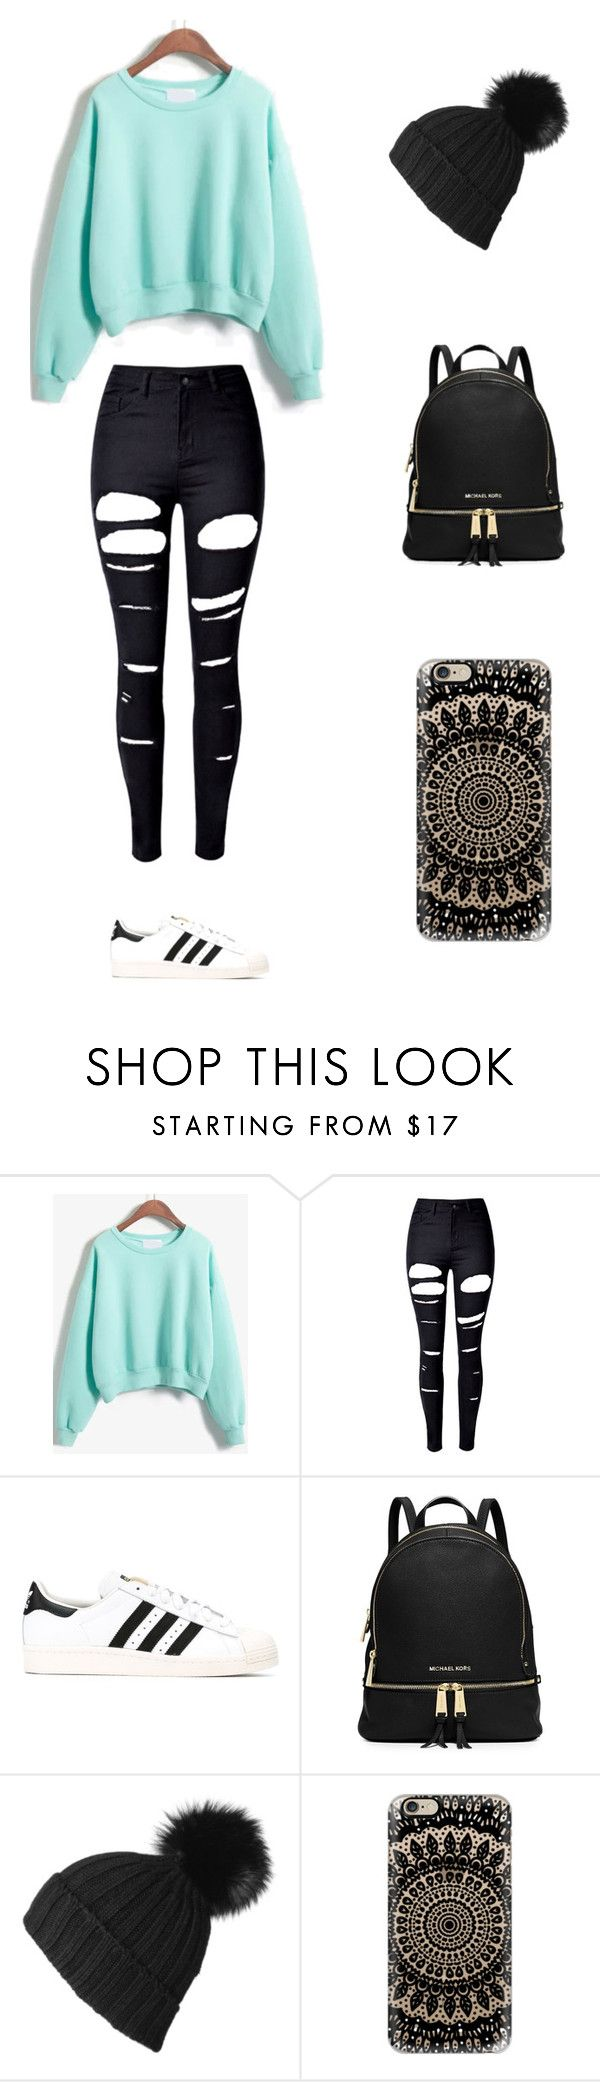 """""""Sin título #239"""" by karenrodriguez-iv on Polyvore featuring moda, WithChic, adidas Originals, Black y Casetify"""